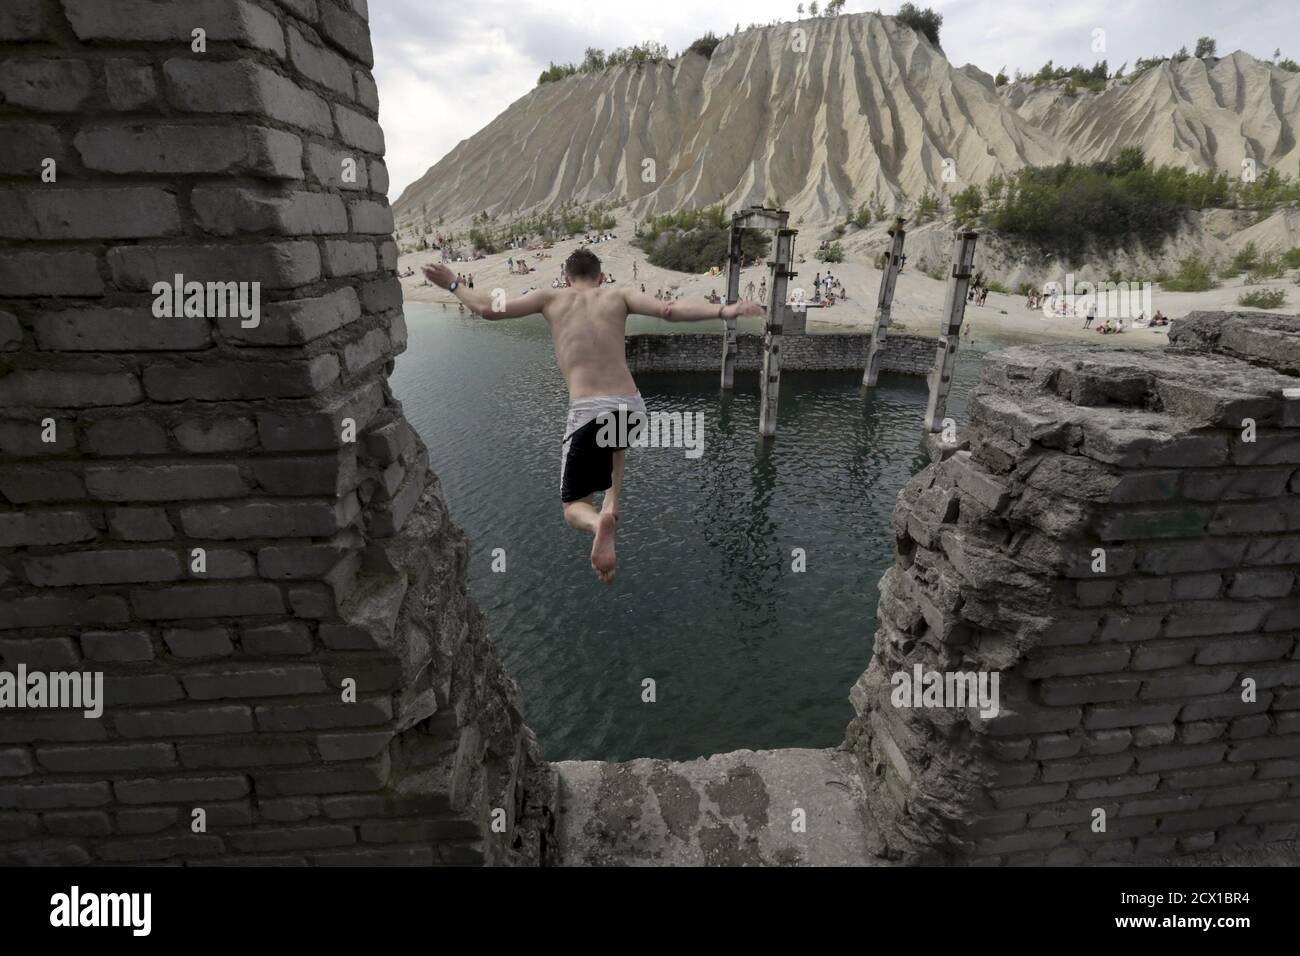 A man jumps into water from the roof of the abandoned Soviet time prison in Rummu quarry, Estonia, during hot weather July 4, 2015. During the Soviet time, Rummu quarry was used as a mining site for Vasalemma marble and most of the workforce came from among the detainees of Murru prison. When the prison closed after 1991, pumps that once kept the quarry and the prison dry were shut down, causing water to fill the quarry. It has become an unofficial and unguarded swimming and diving spot, attracting locals and tourists. REUTERS/Ints Kalnins Stock Photo